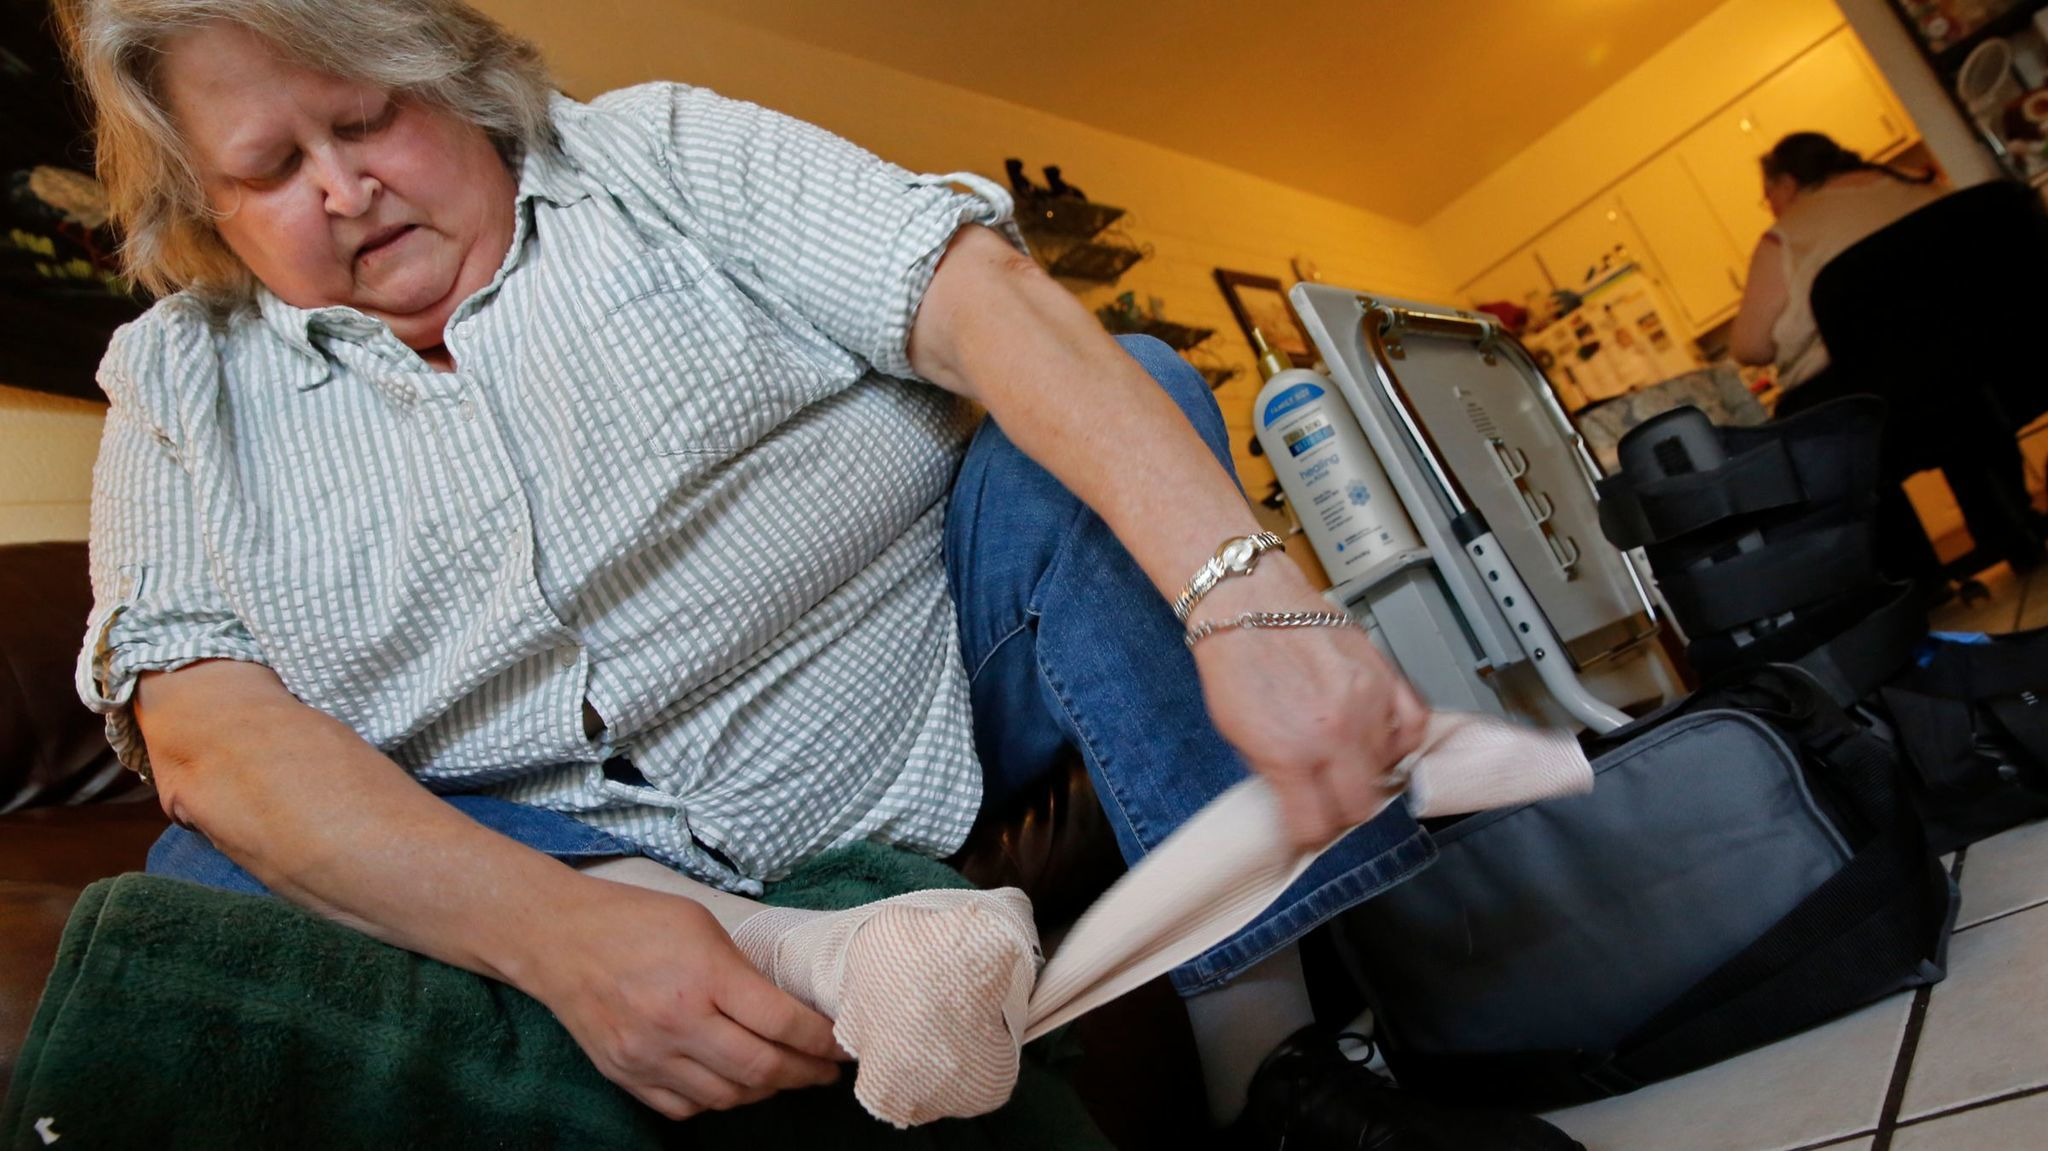 This Arizona woman lost part of her foot to a diabetes-related infection.